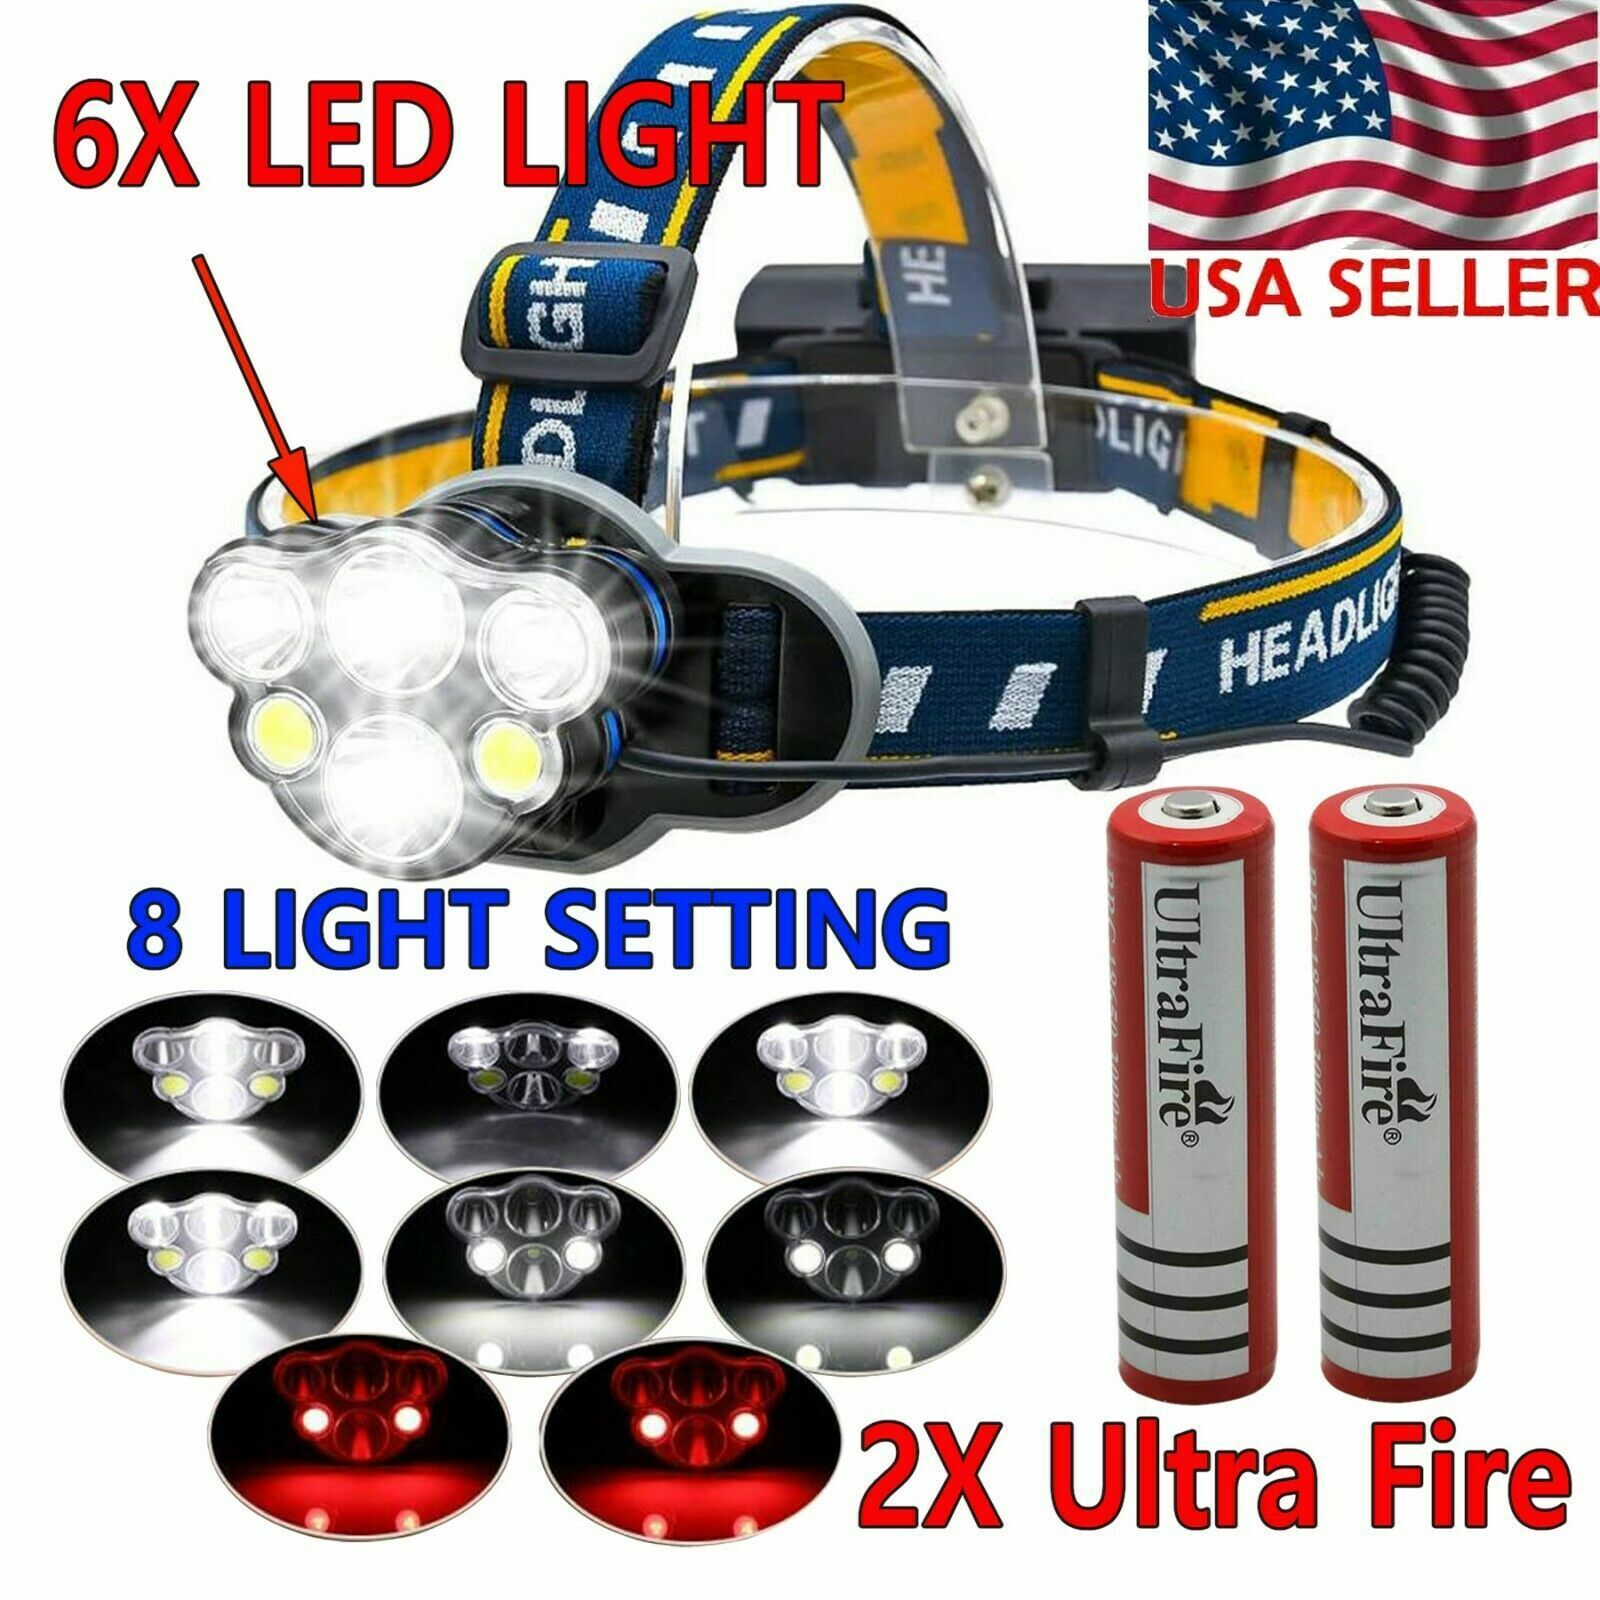 250000LM 5X T6 LED Rechargeable Headlamp Head Light Flashlight Torch Lamp USA Camping & Hiking